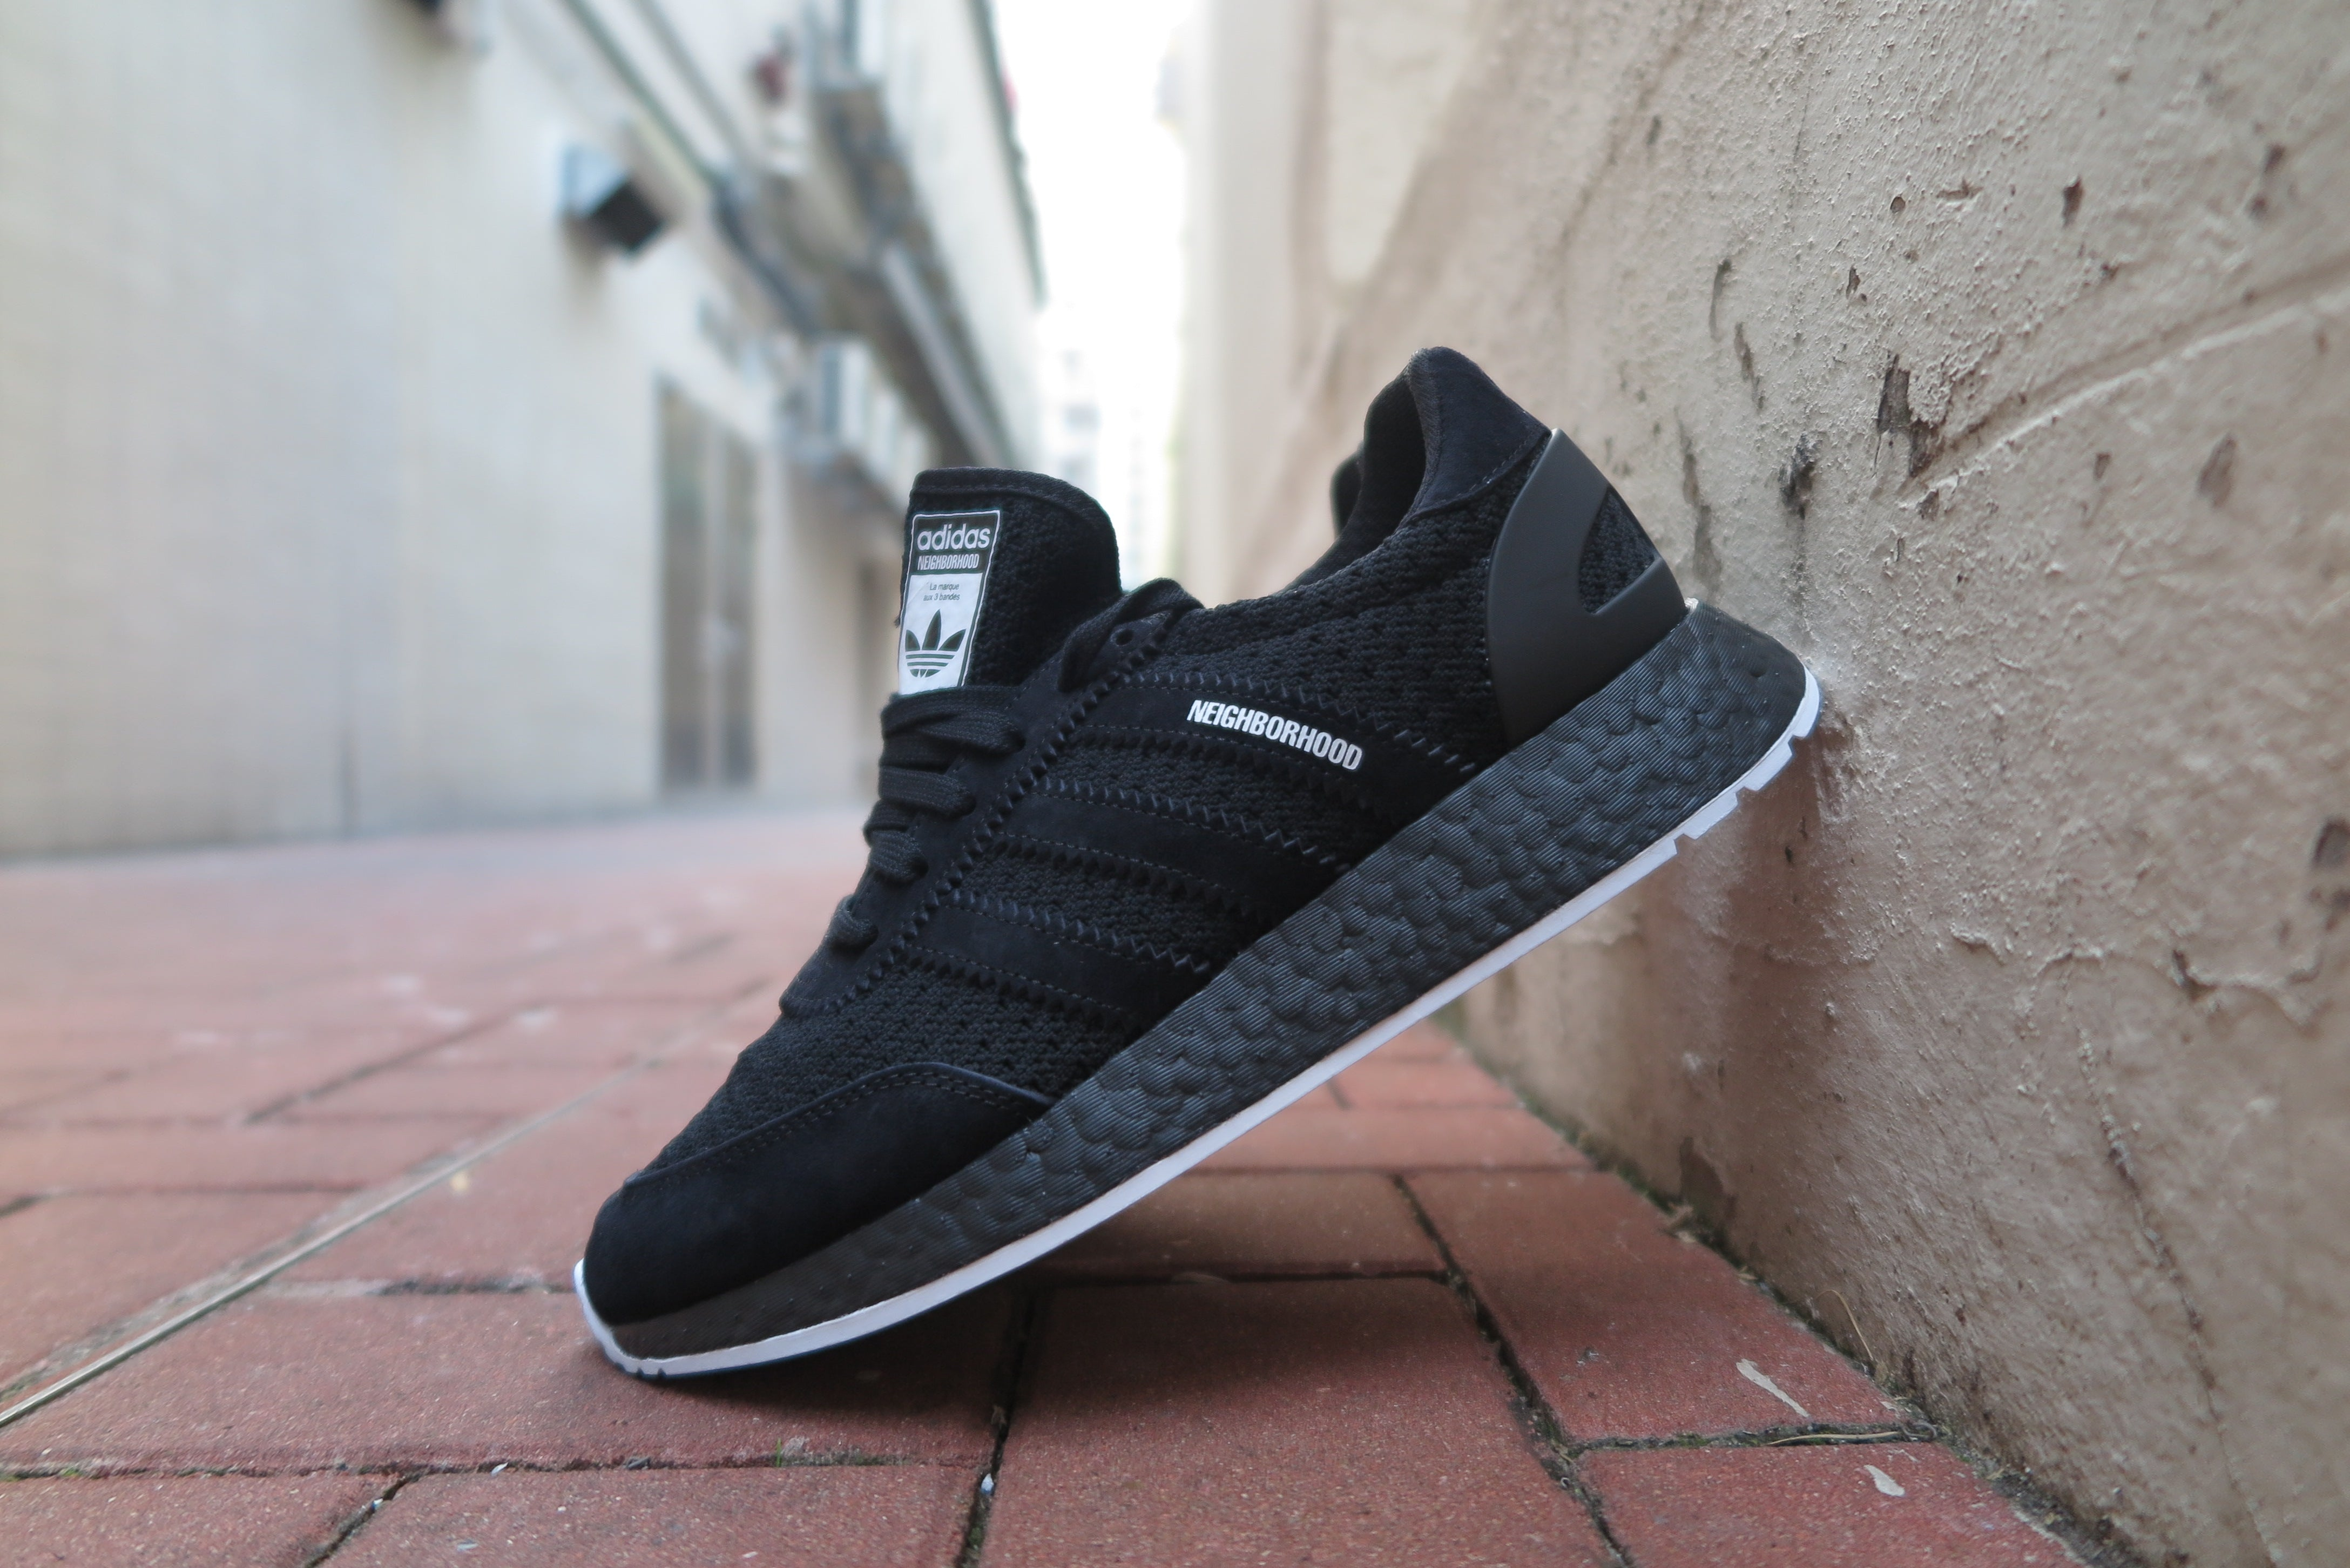 Neighborhood X adidas I-5923 - Core Black/Footwear White #DA8838-Sneakers-Navy Selected Shop